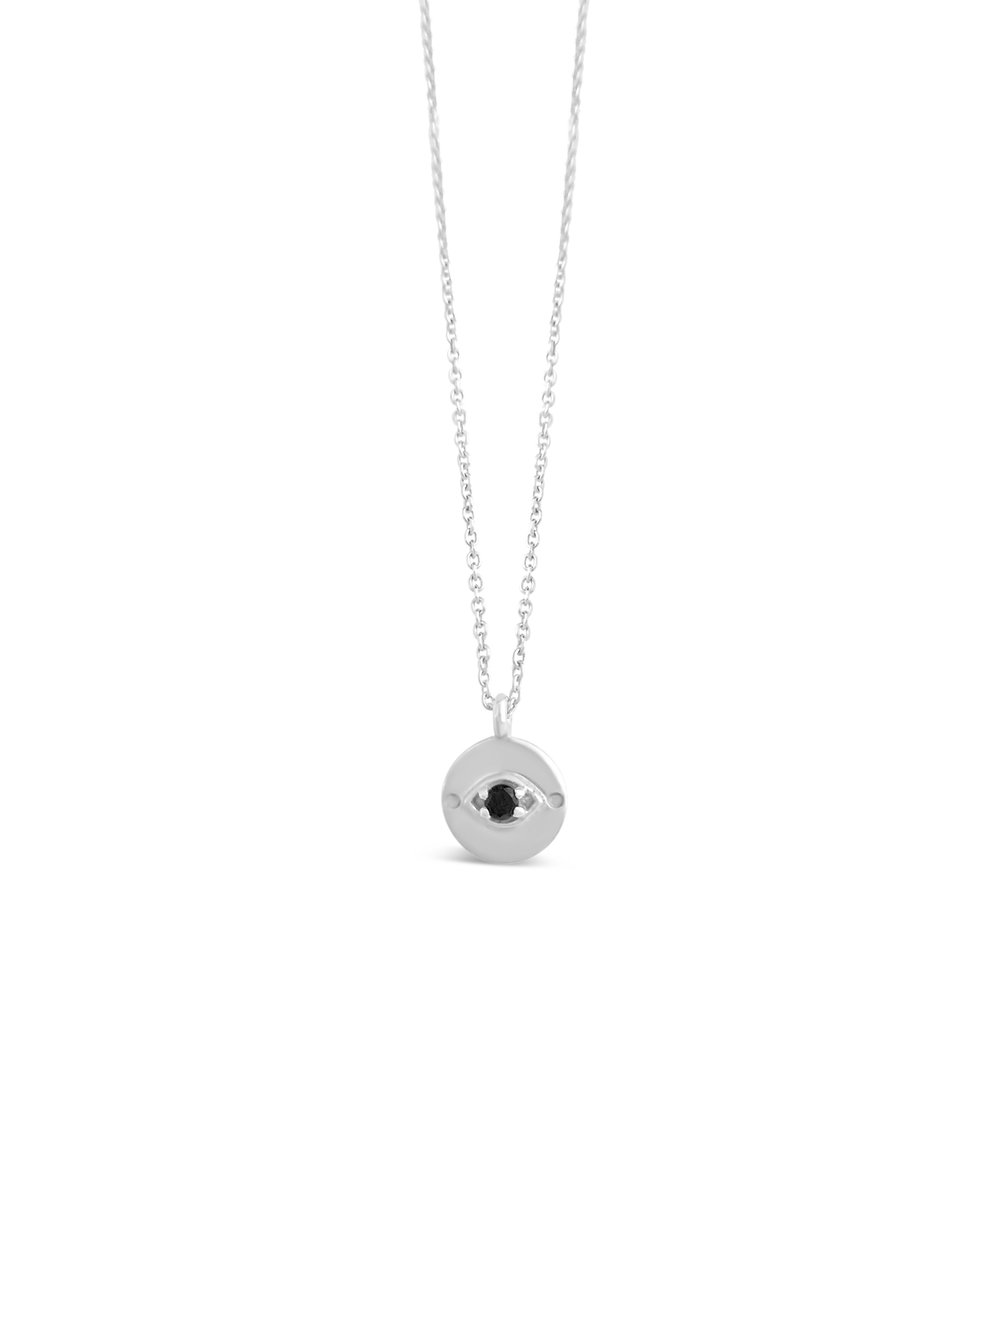 sale necklace best sterling silver eye buys more evil views